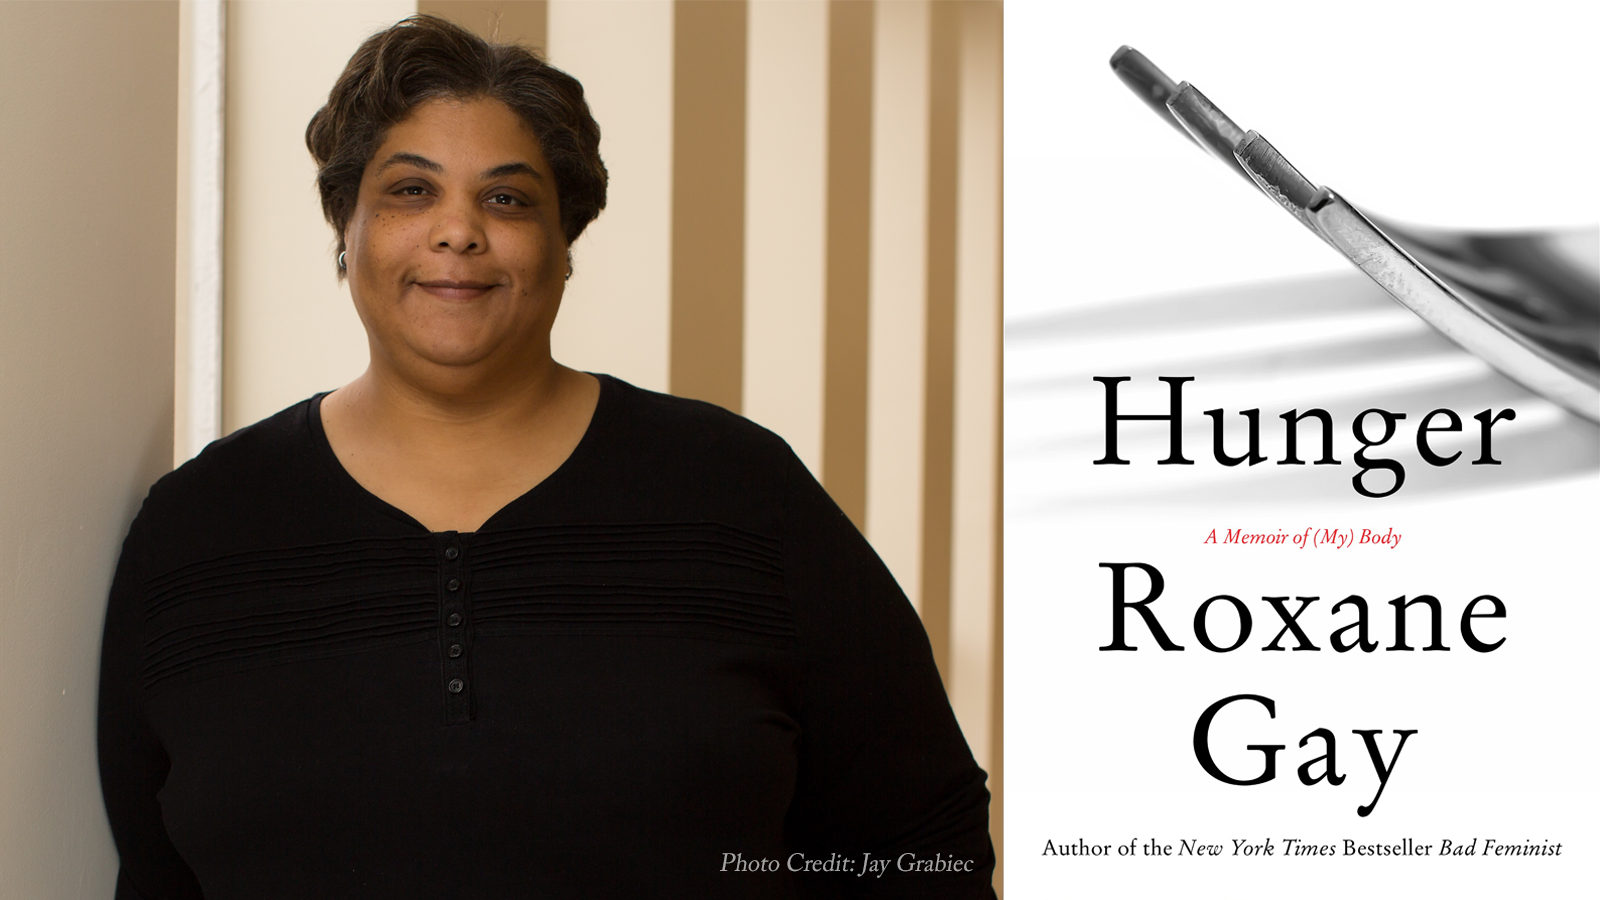 Cover of Hunger and photo of Roxane Gay by Jay Grabiec